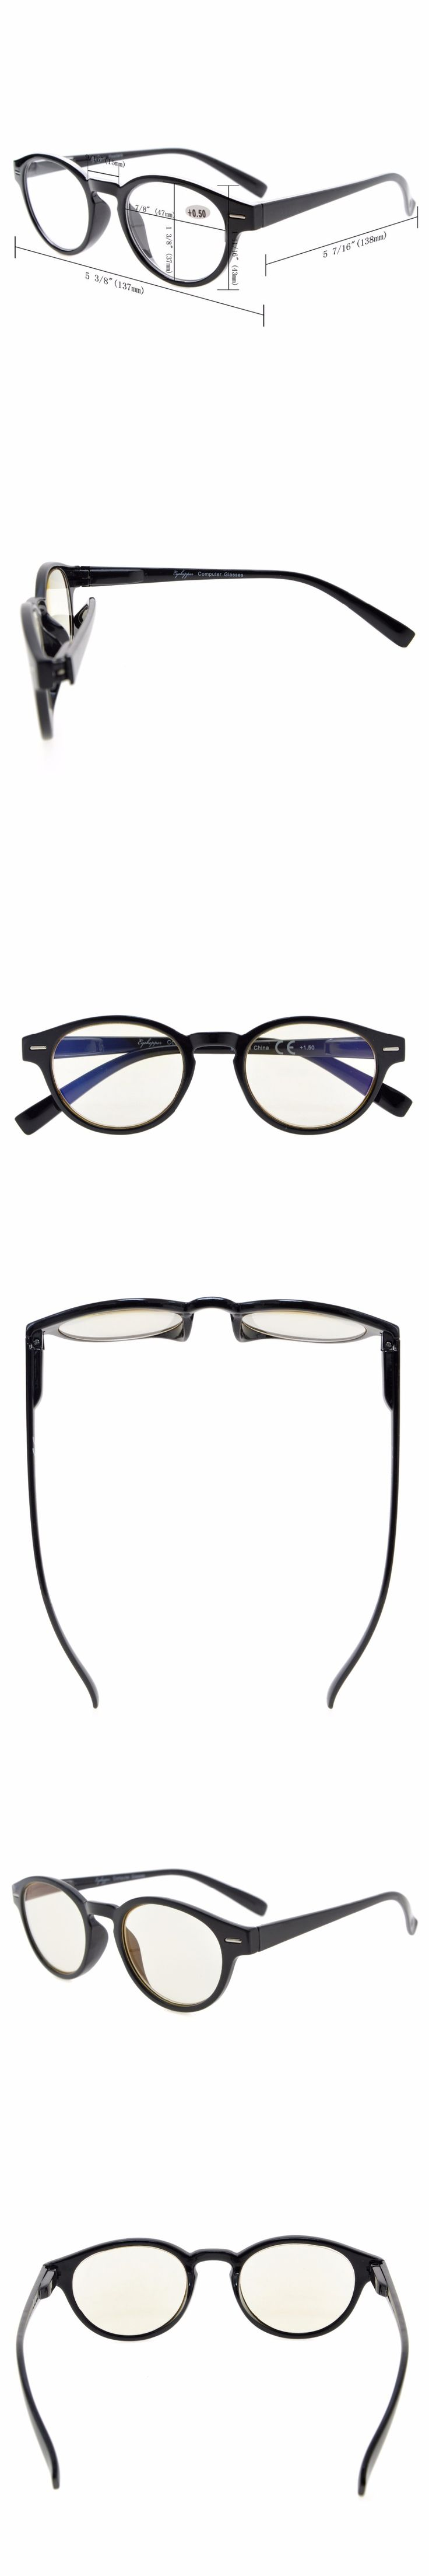 CG091 Eyekepper Retro Key Hole Oval Round Computer Readers Spring-Hinges Computer Reading Glasses Computer Eyeglasses